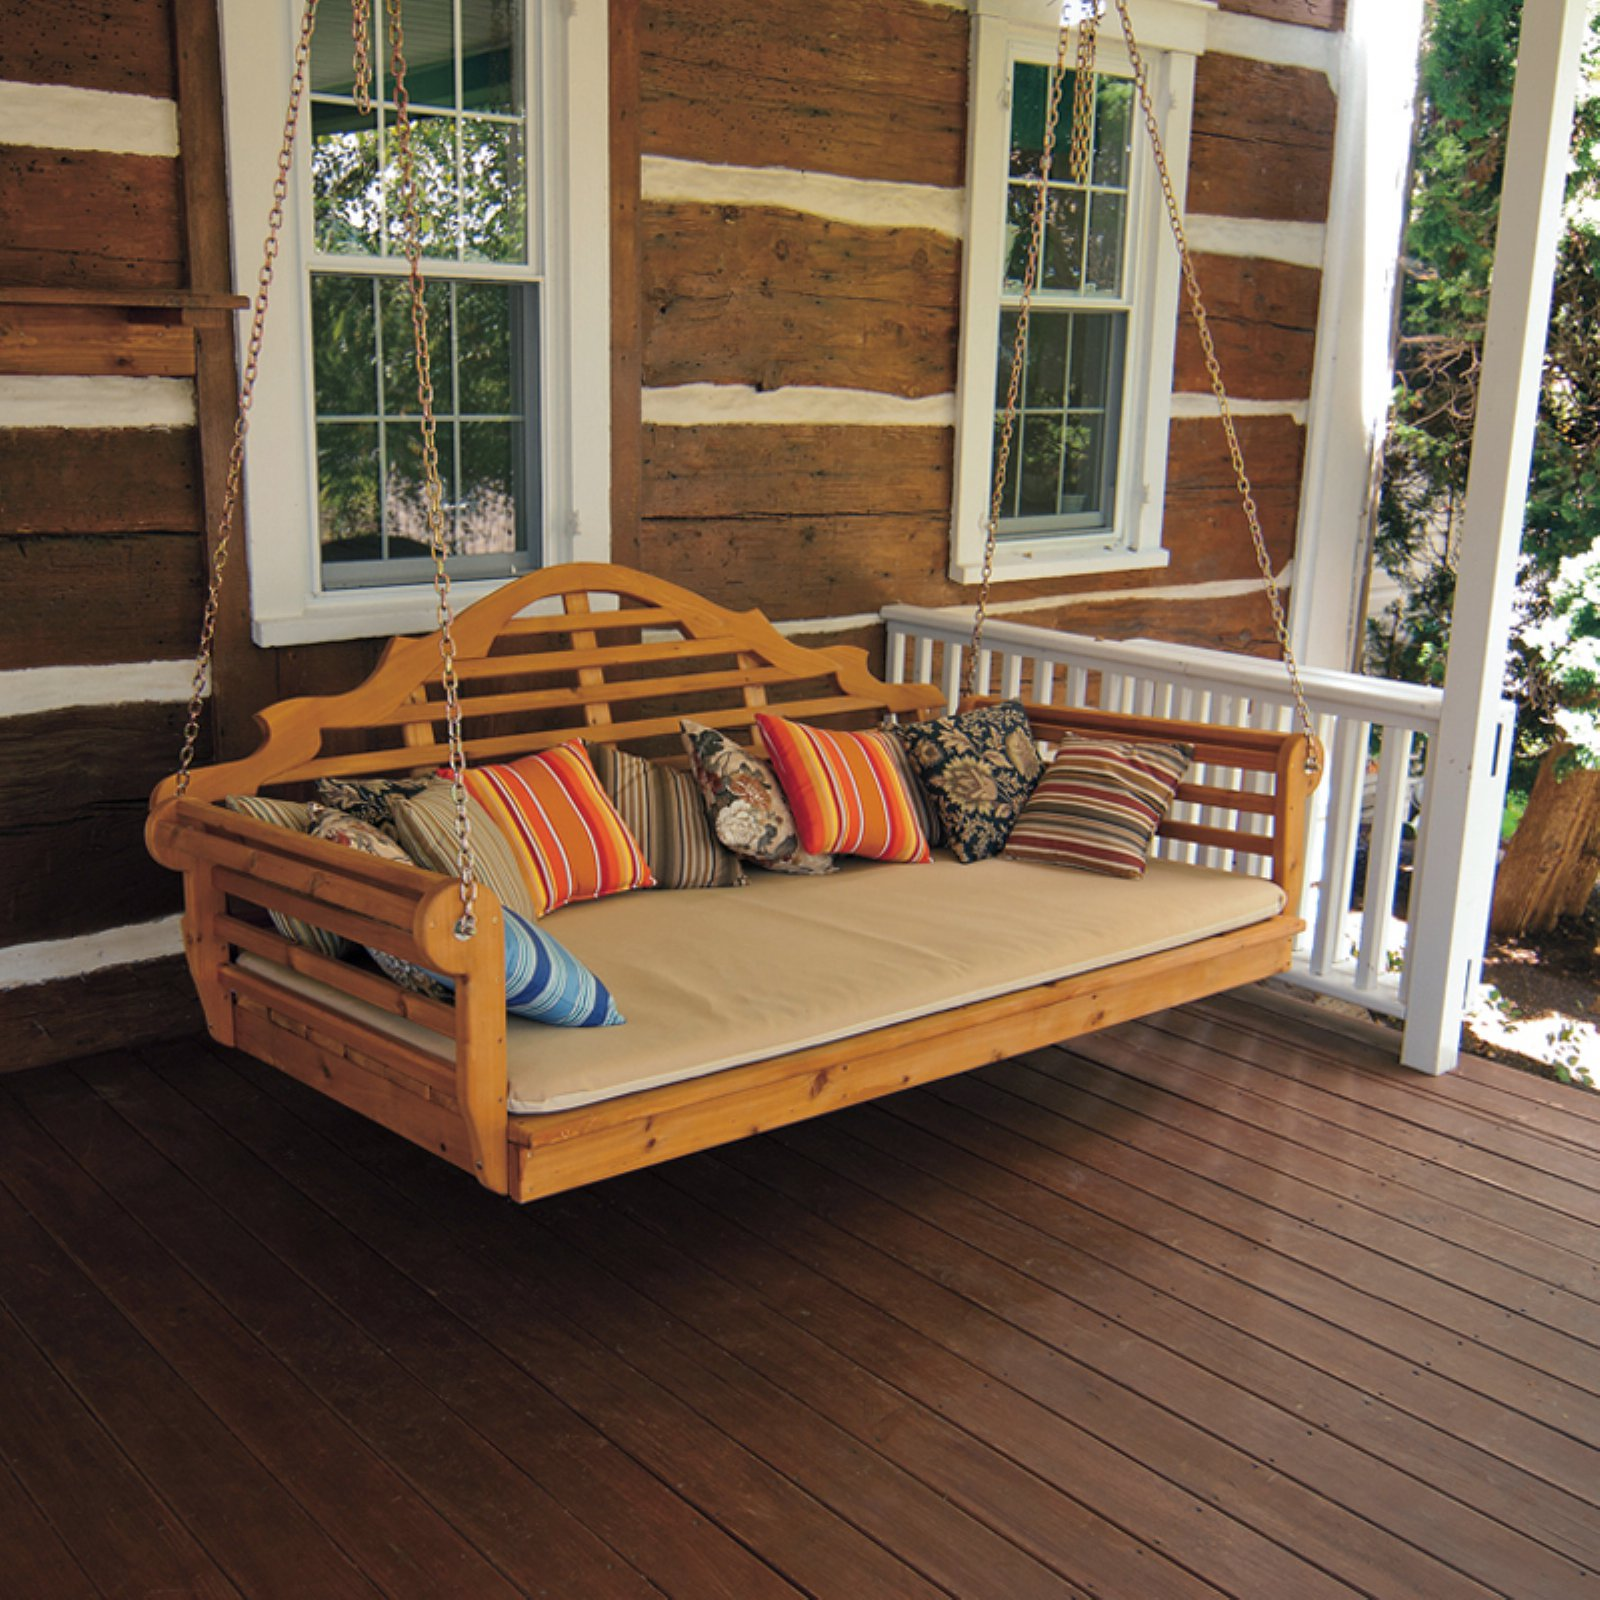 A & L Furniture Western Red Cedar Marlboro 85 x 47 in. Extra Large Swing Bed - Holds Twin Size Mattress